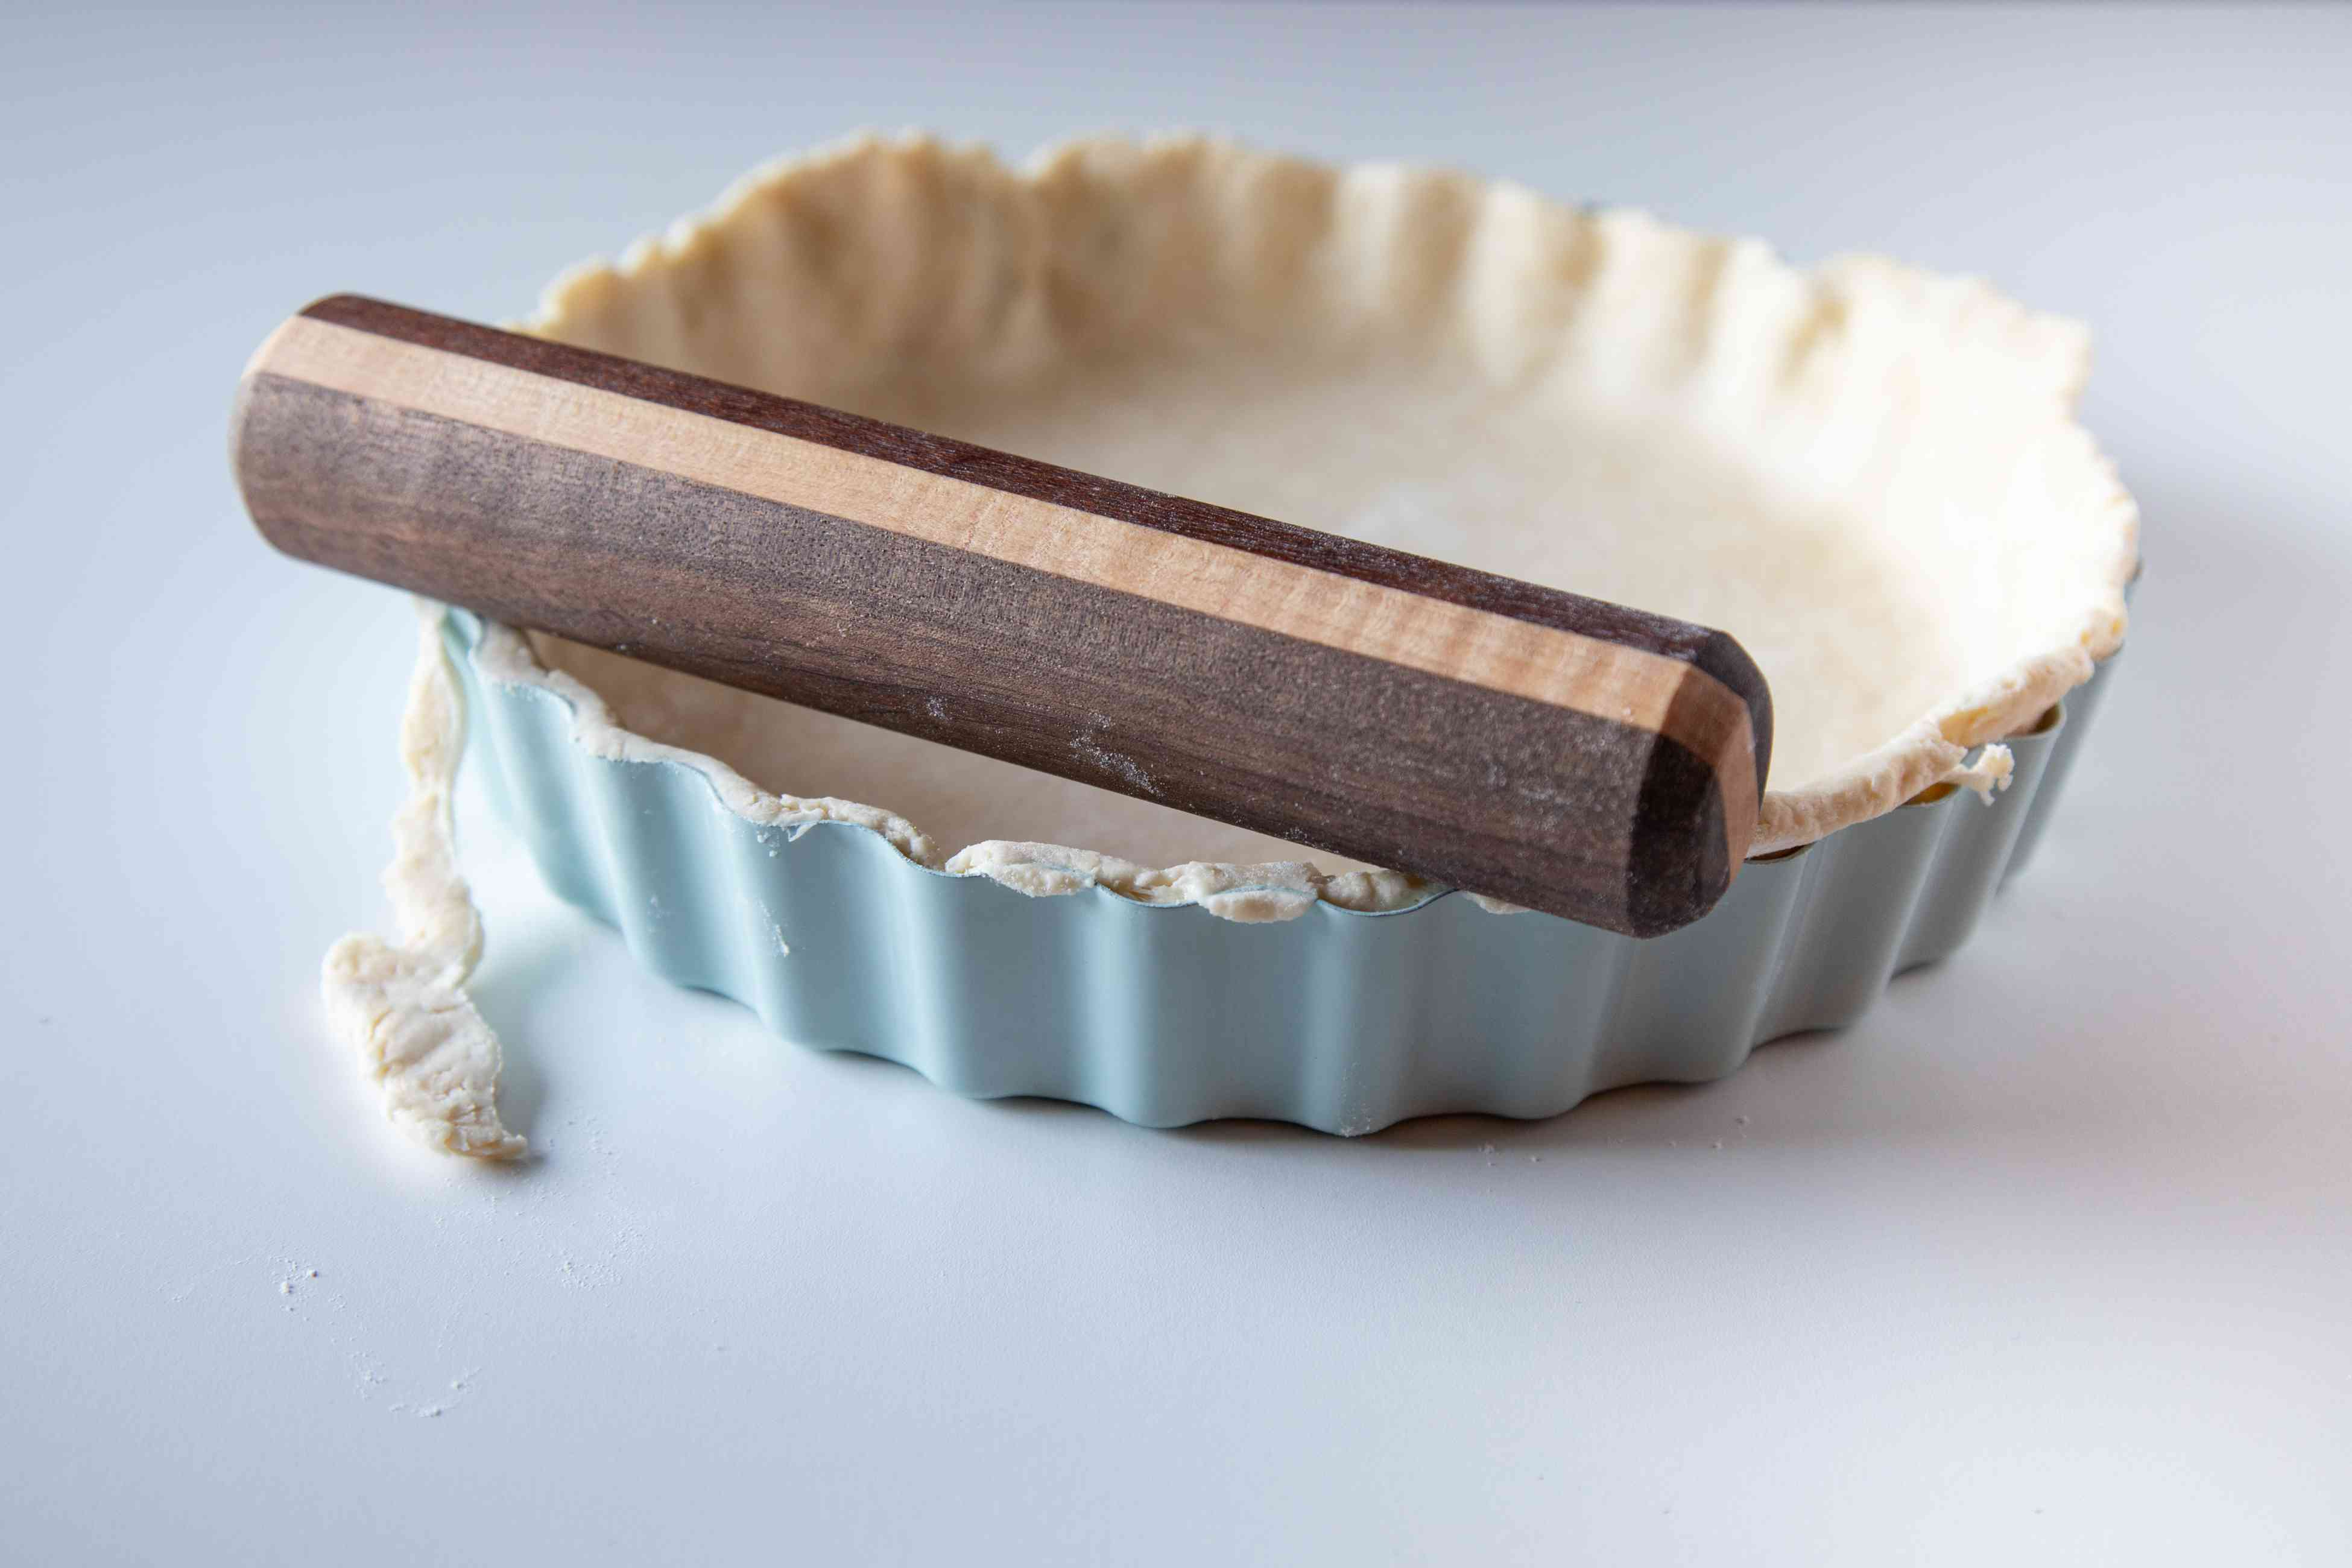 Rolling a rolling pin over the top of a tart crust to make a quiche lorraine recipe.